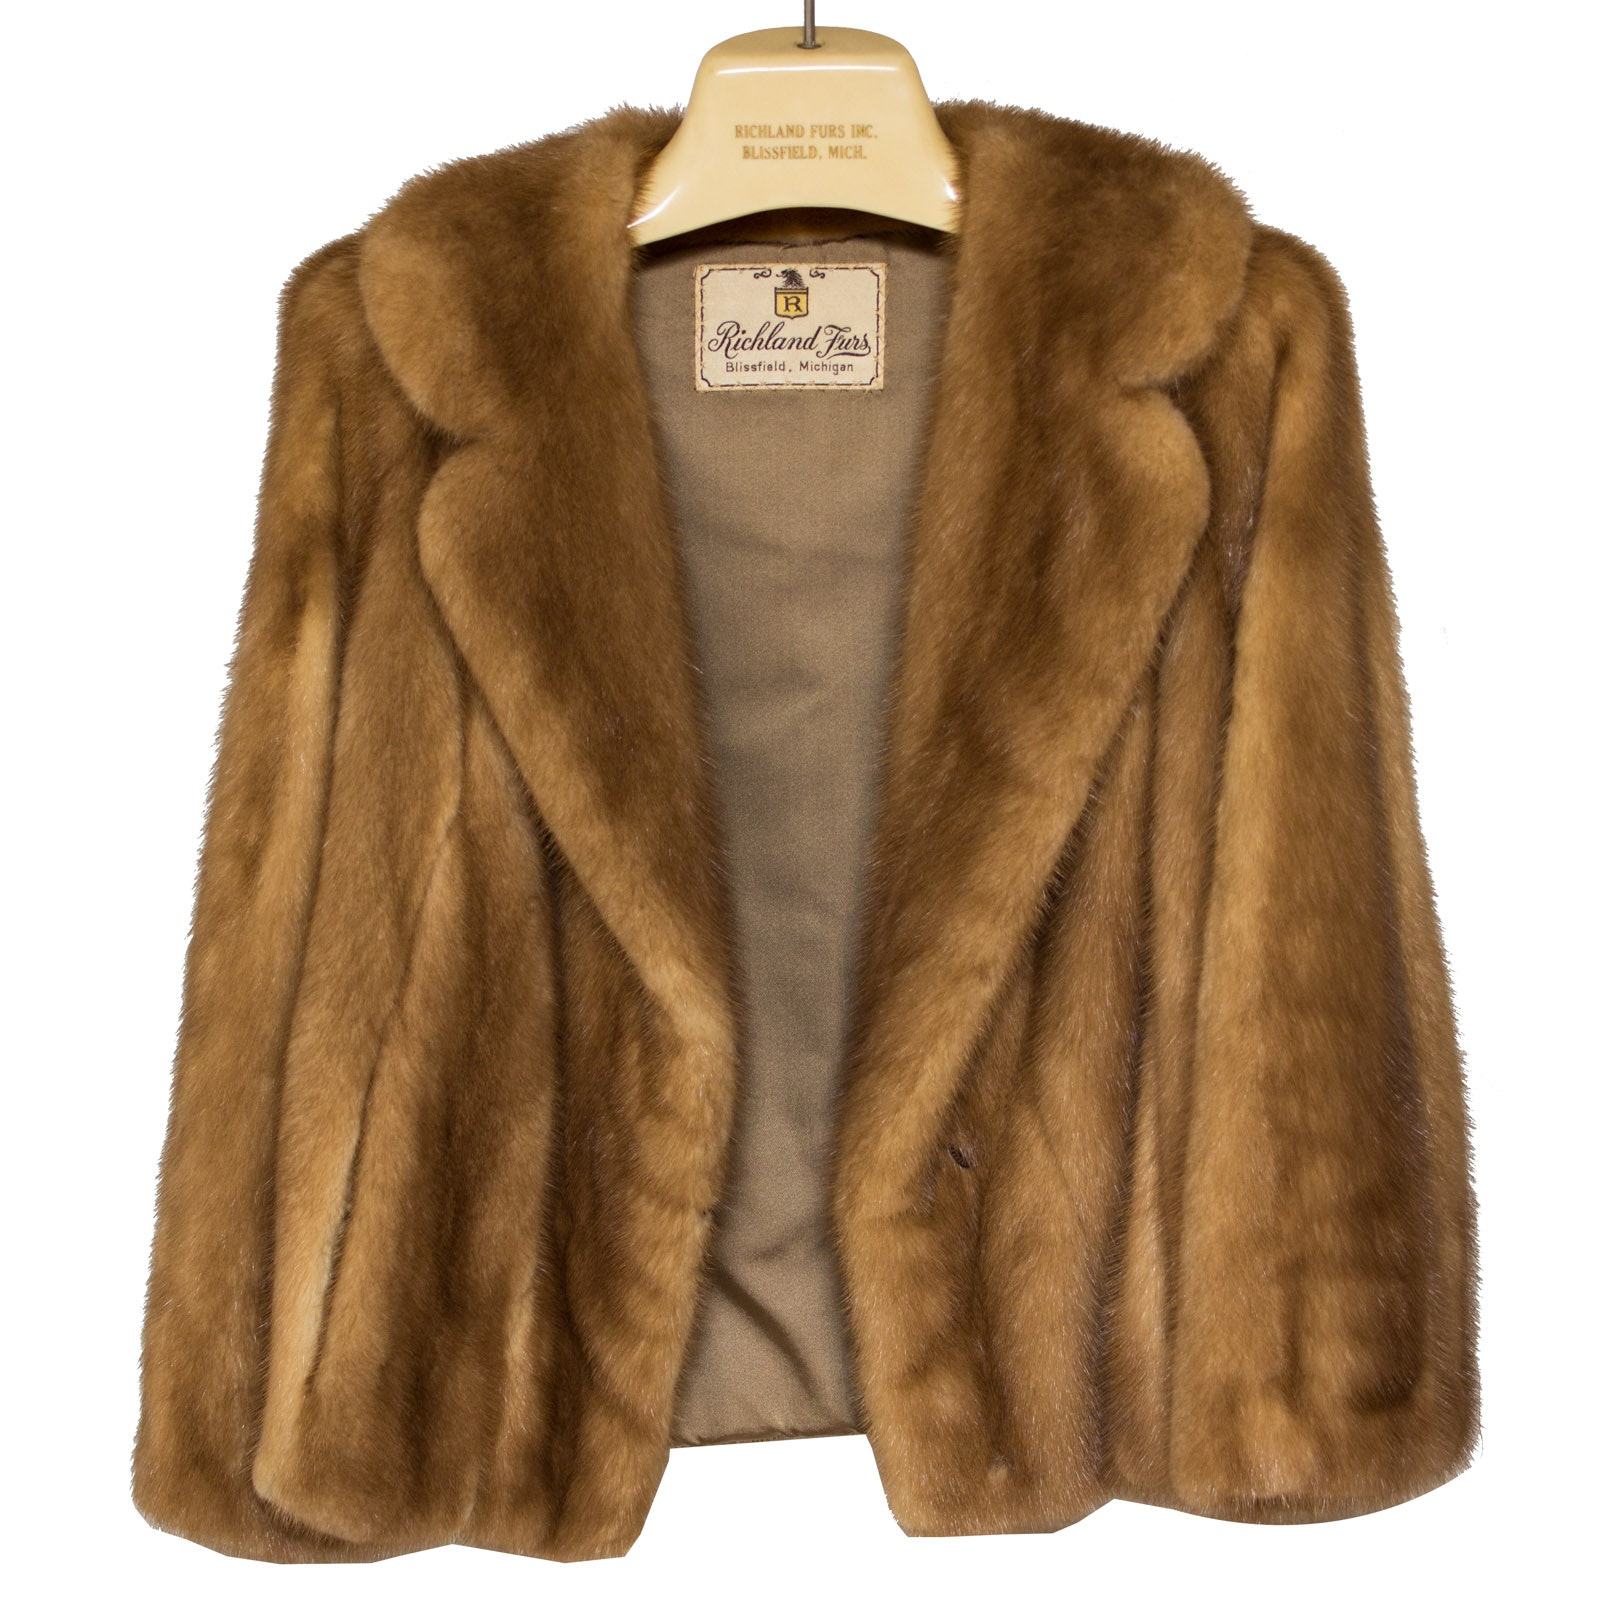 Vintage Mink Fur Coat by Richland Furs : EBTH